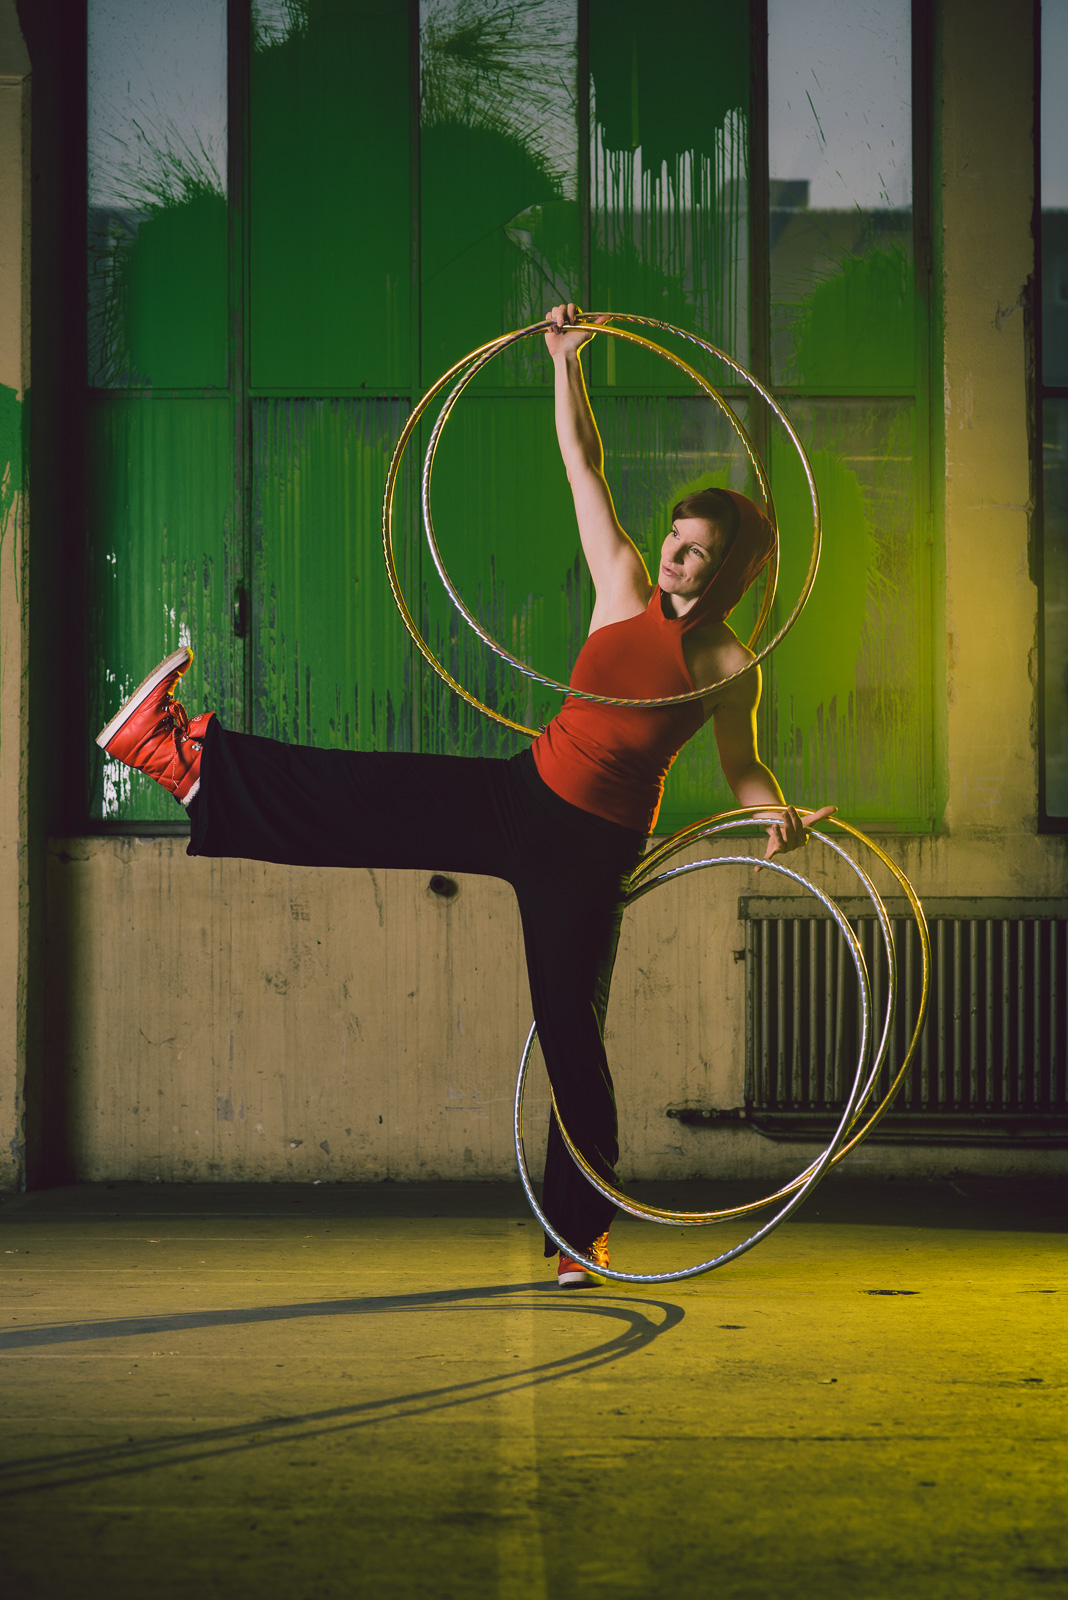 hula-hoop-shootingLY8_0854